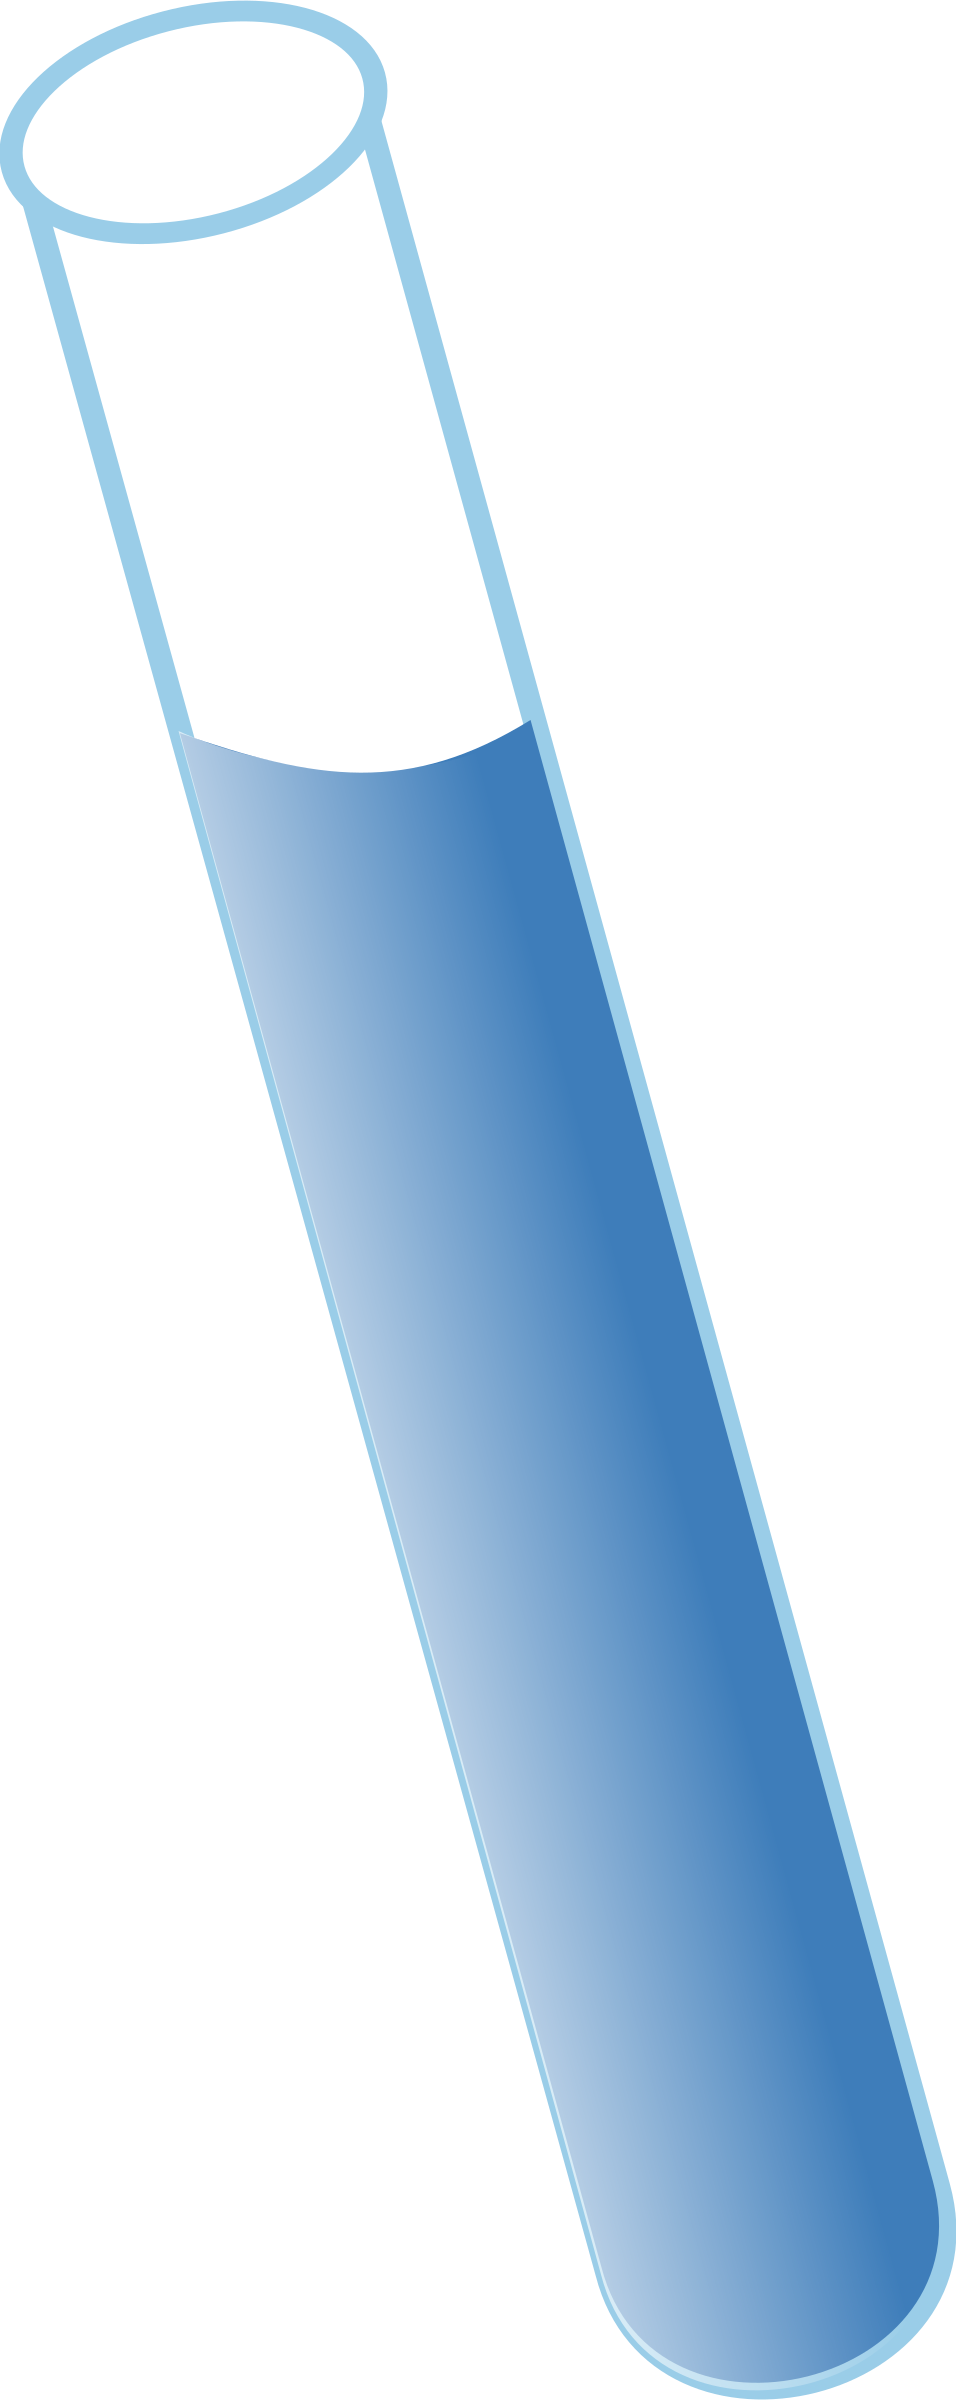 956x2400 Test Tube Clipart